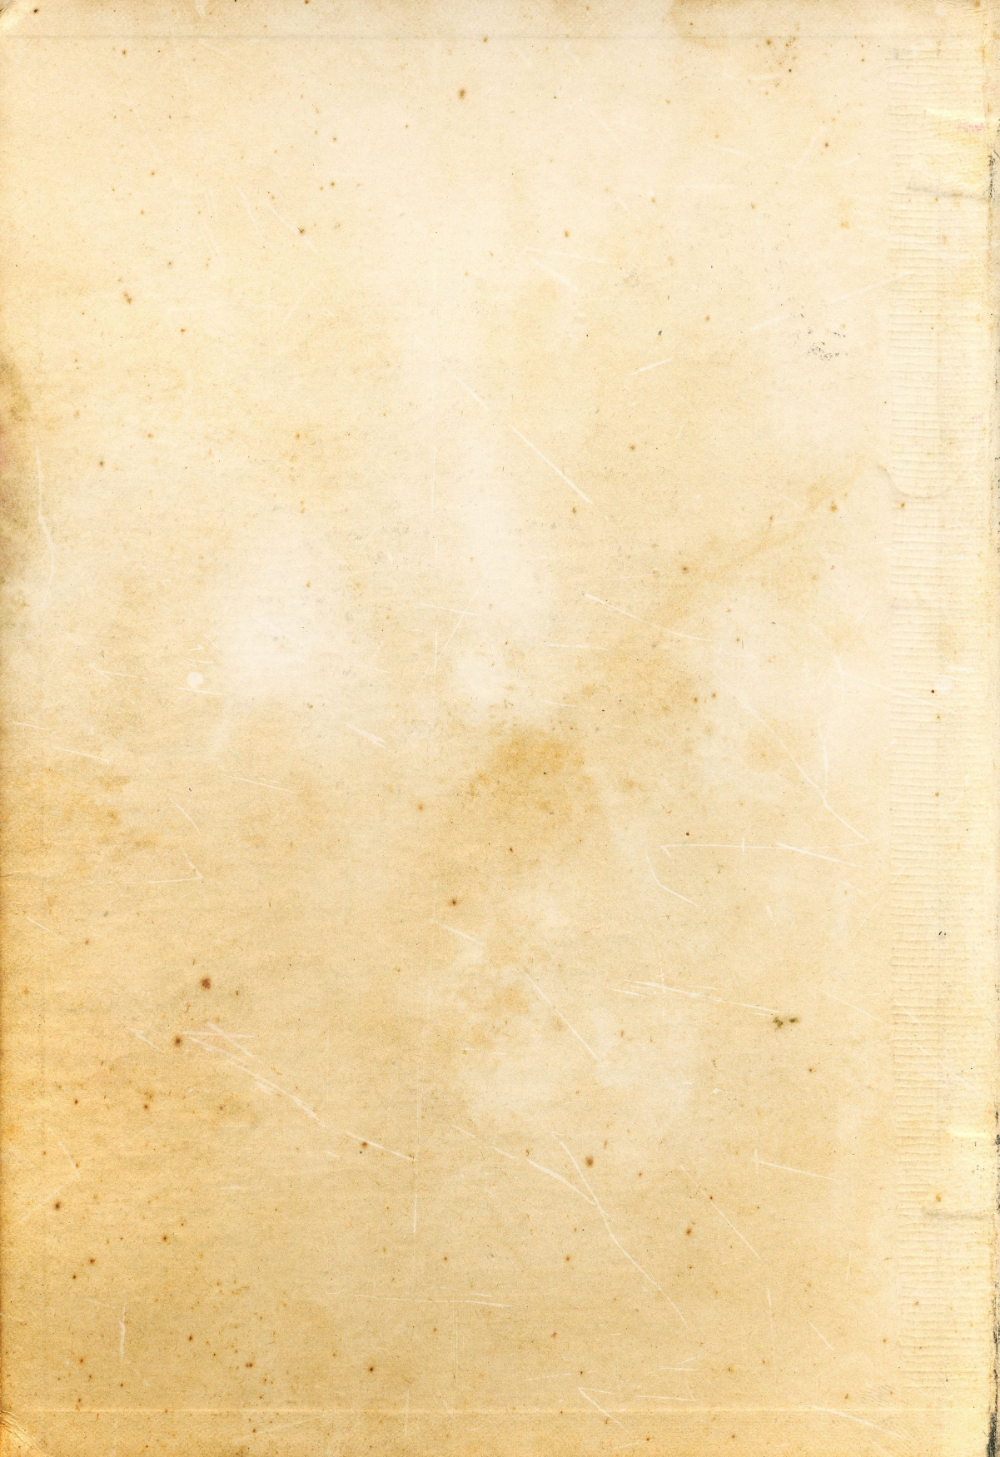 50 Antique Paper Texture Wallpapers Download At Wallpaperbro Paper Texture Paper Background Texture Old Paper Background